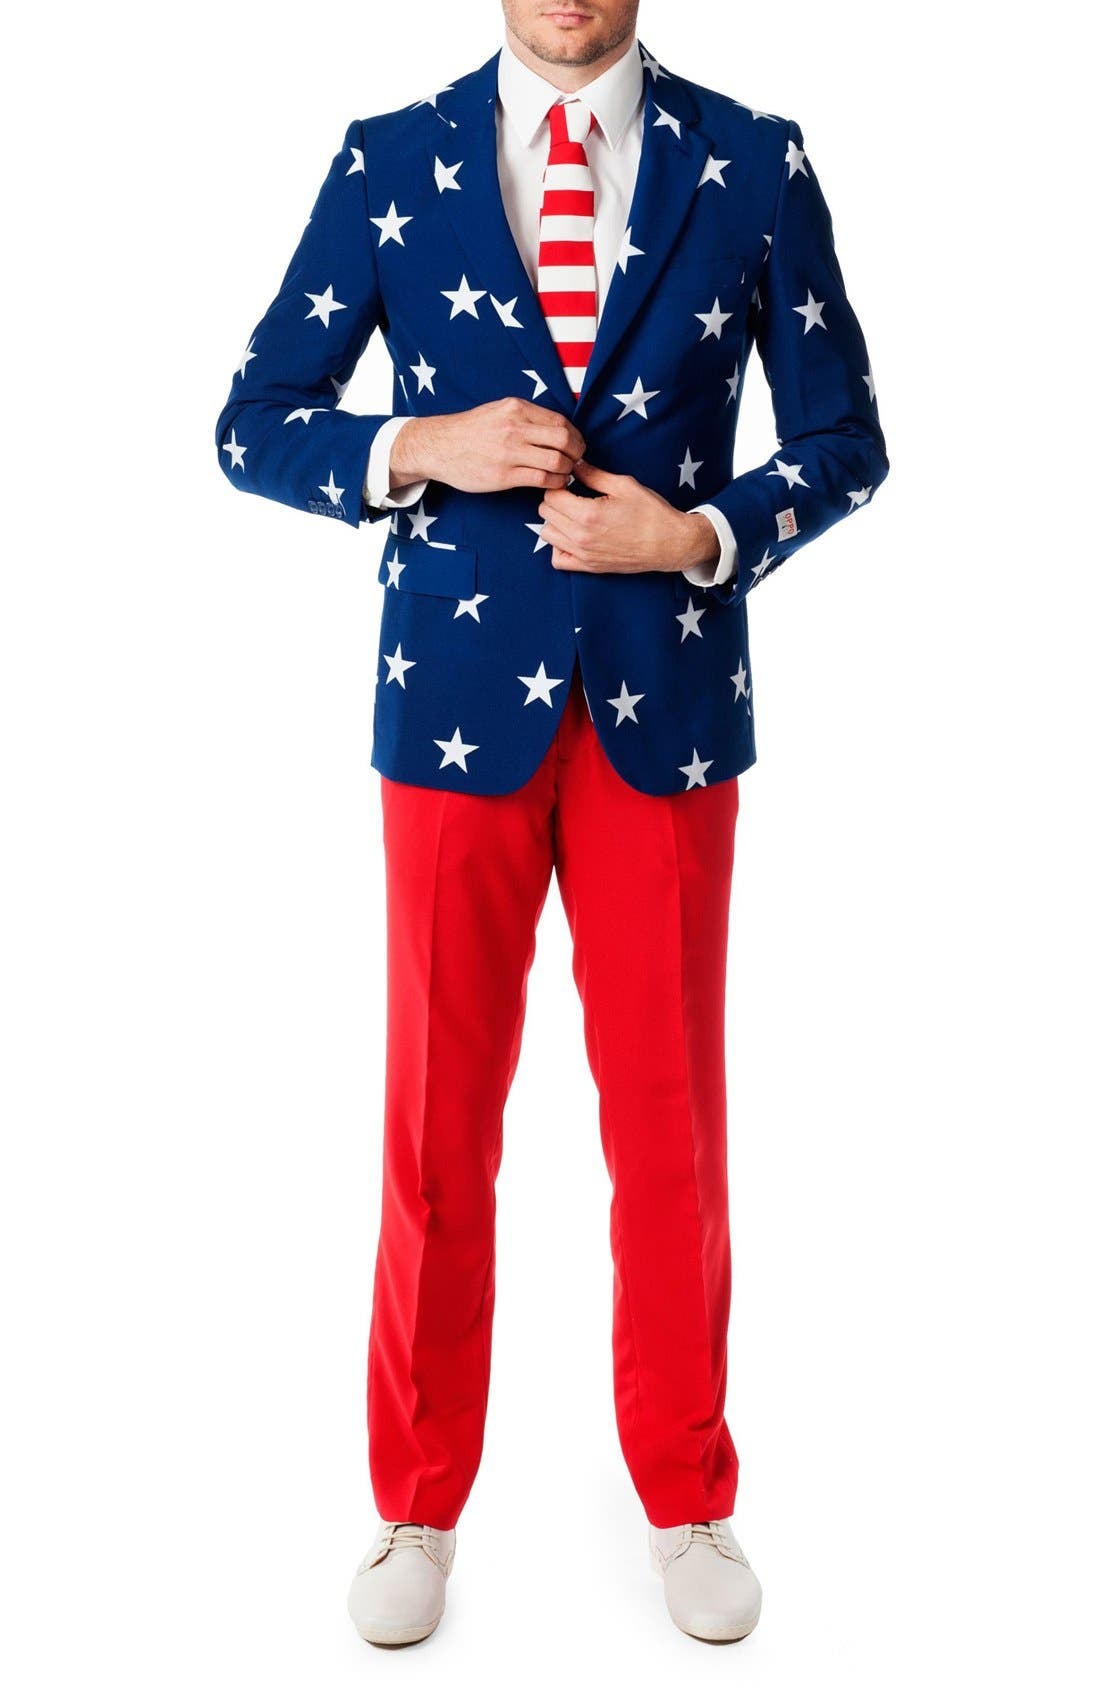 Alternate Image 1 Selected - OppoSuits 'Stars & Stripes' Trim Fit Suit with Tie